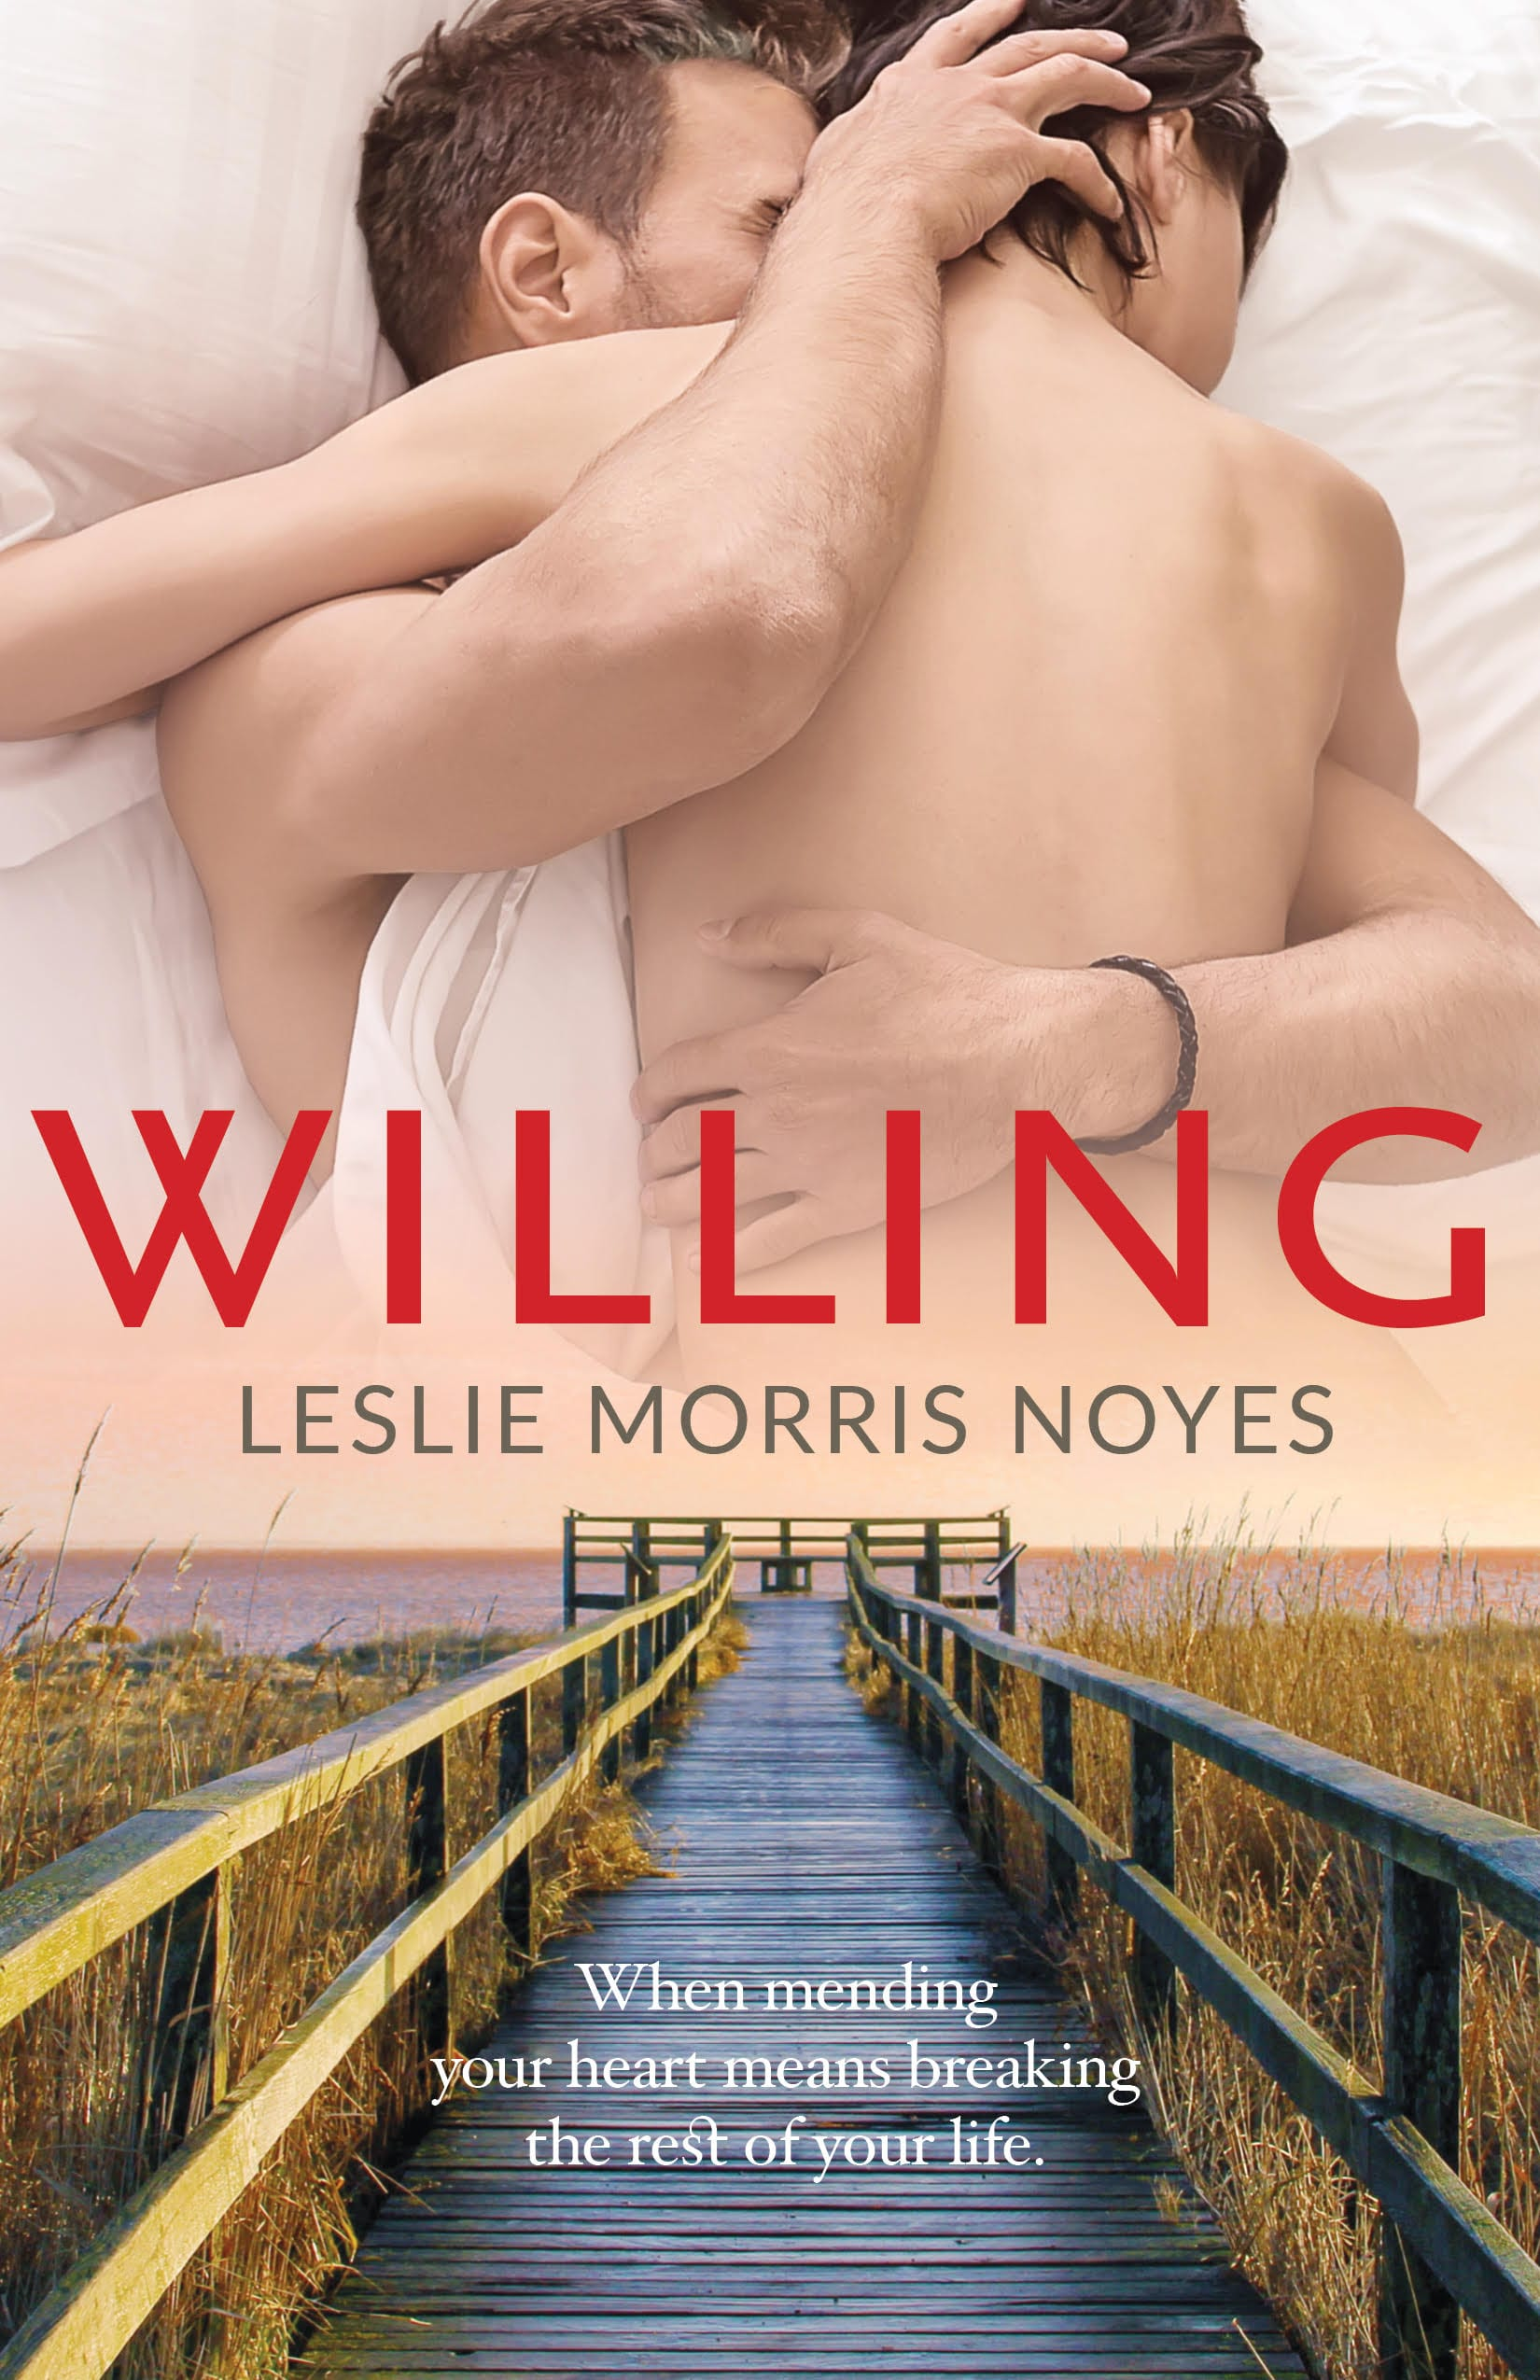 Leslie Morris Noyes - Willing Book Cover